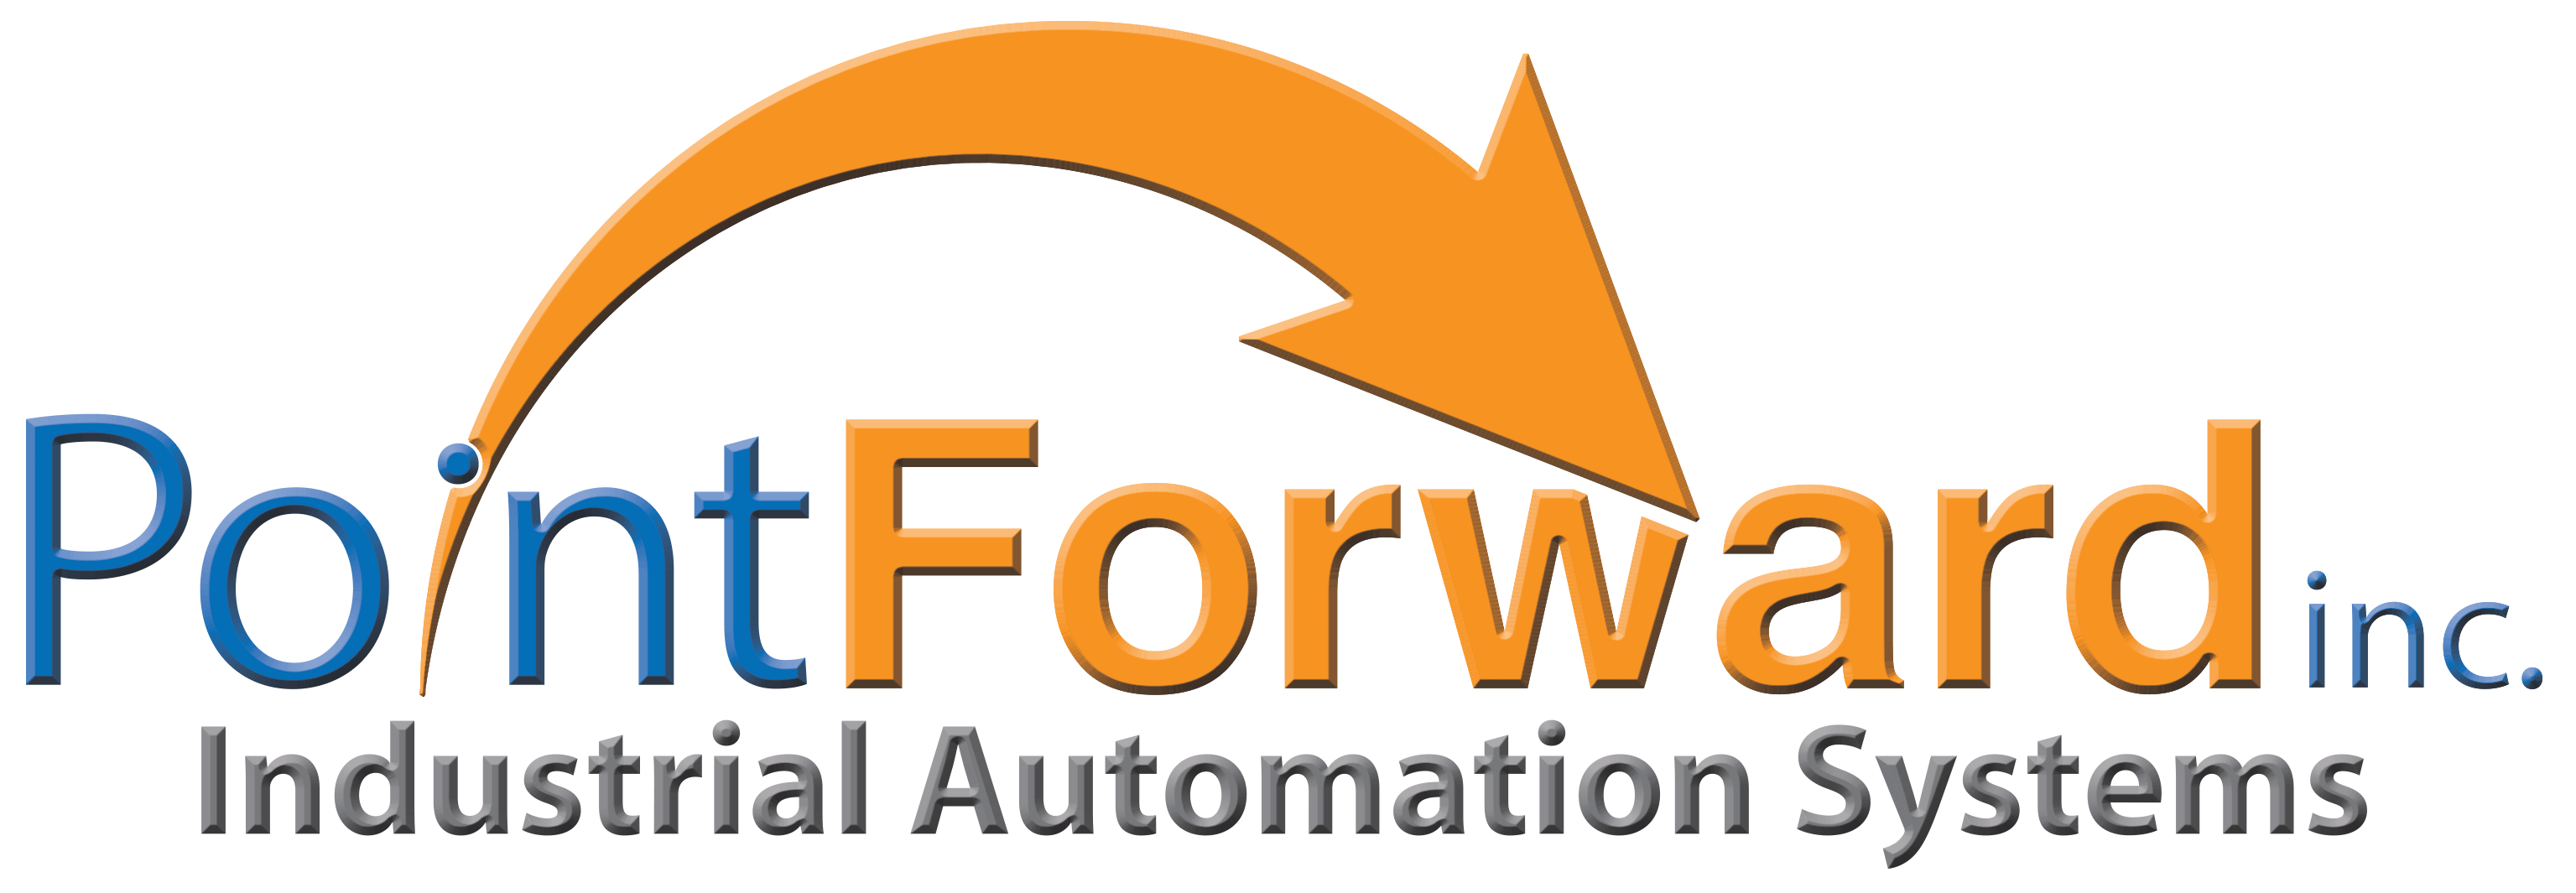 PointForward Inc Logo